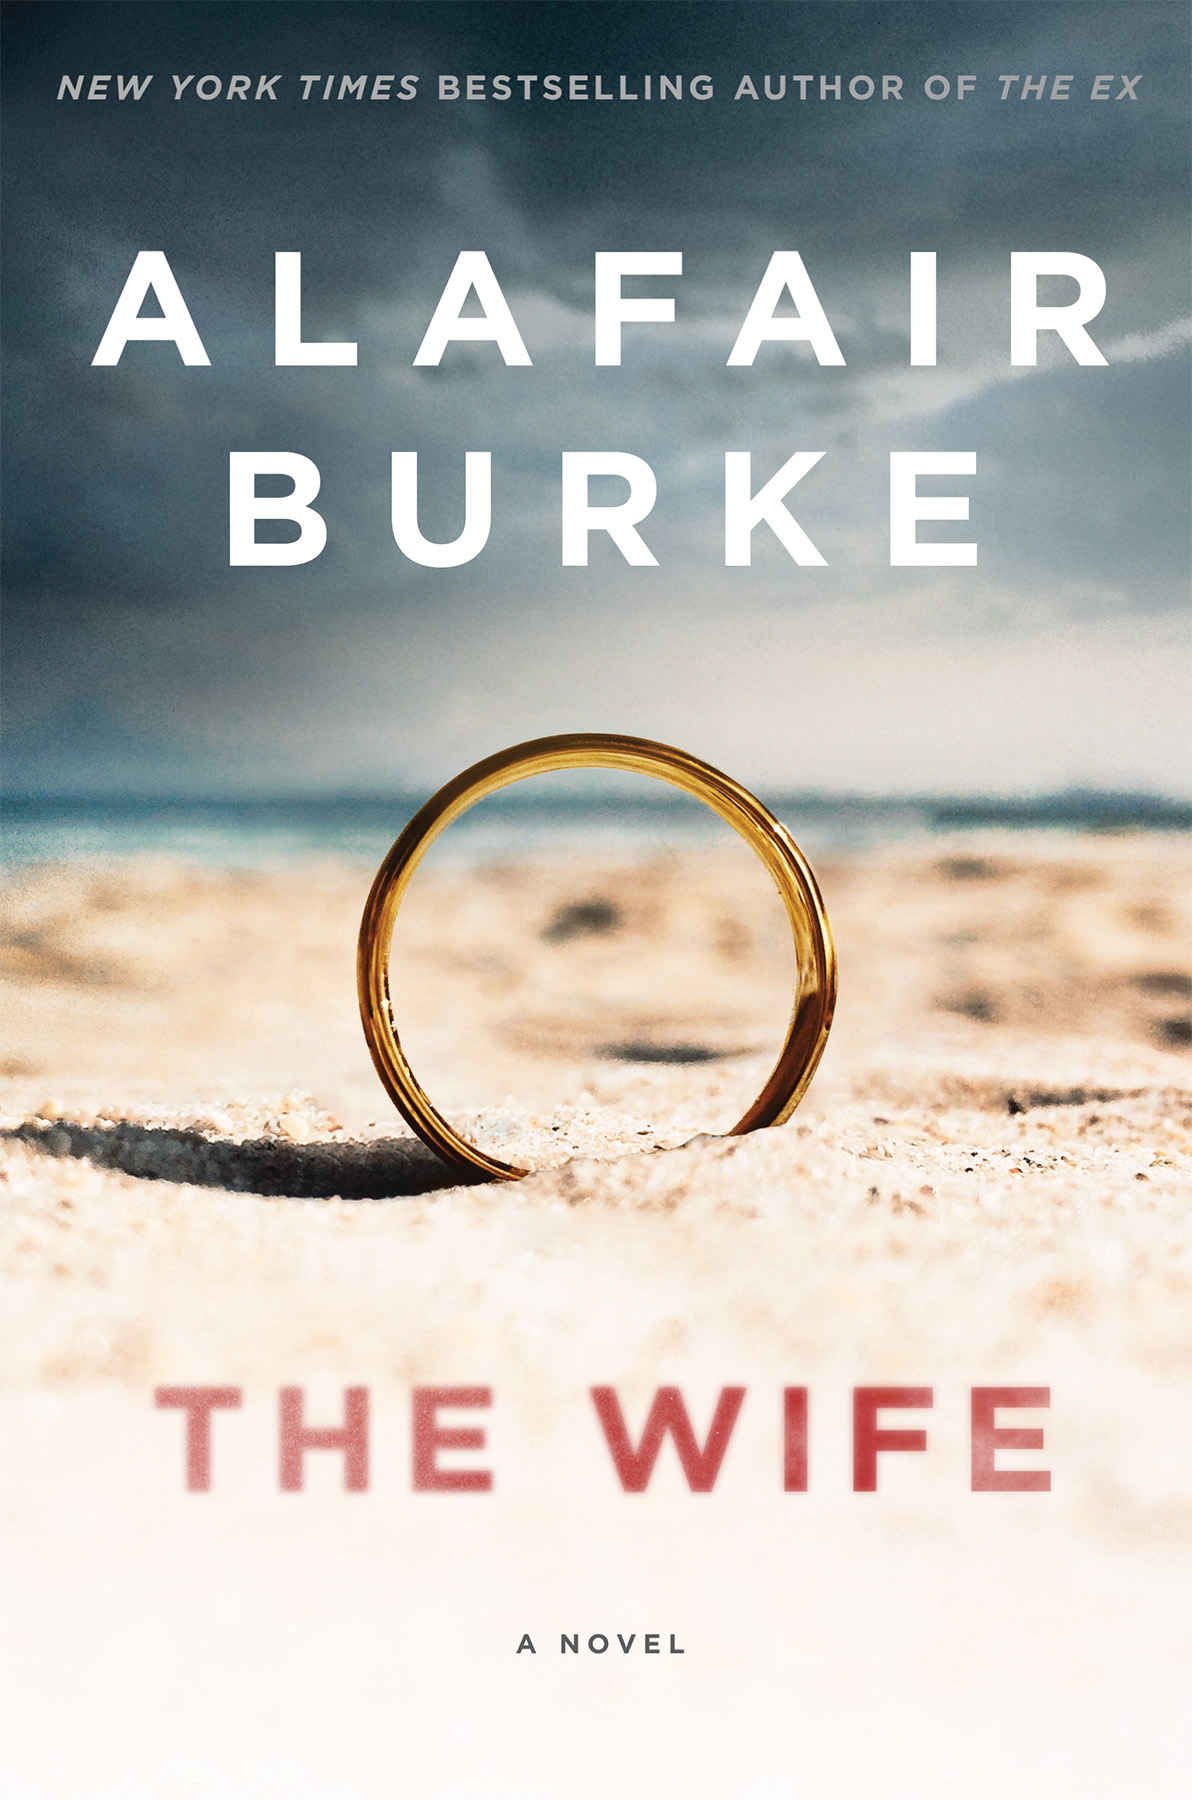 The Wife - Alafair Burke [kindle] [mobi]